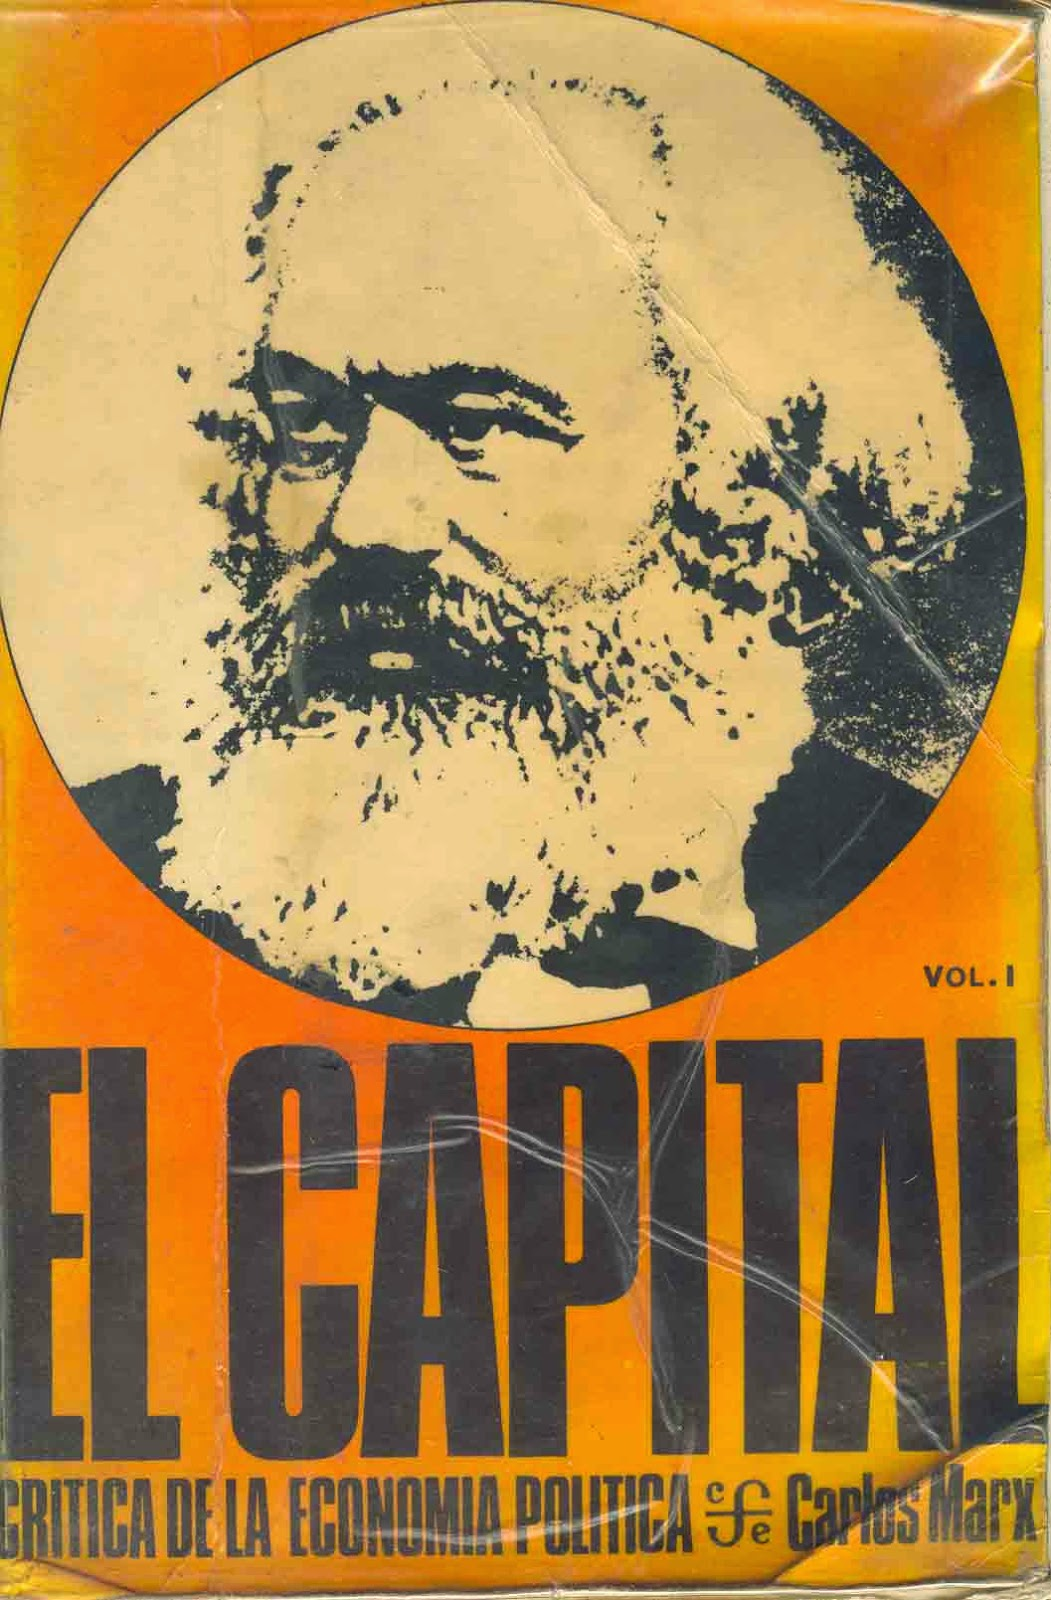 karl marx capital In capital volume 3 marx does indeed make the prediction that the rate of profit will fall  marx, karl, karl marx: selected writings, 2 nd edition, david mclellan.